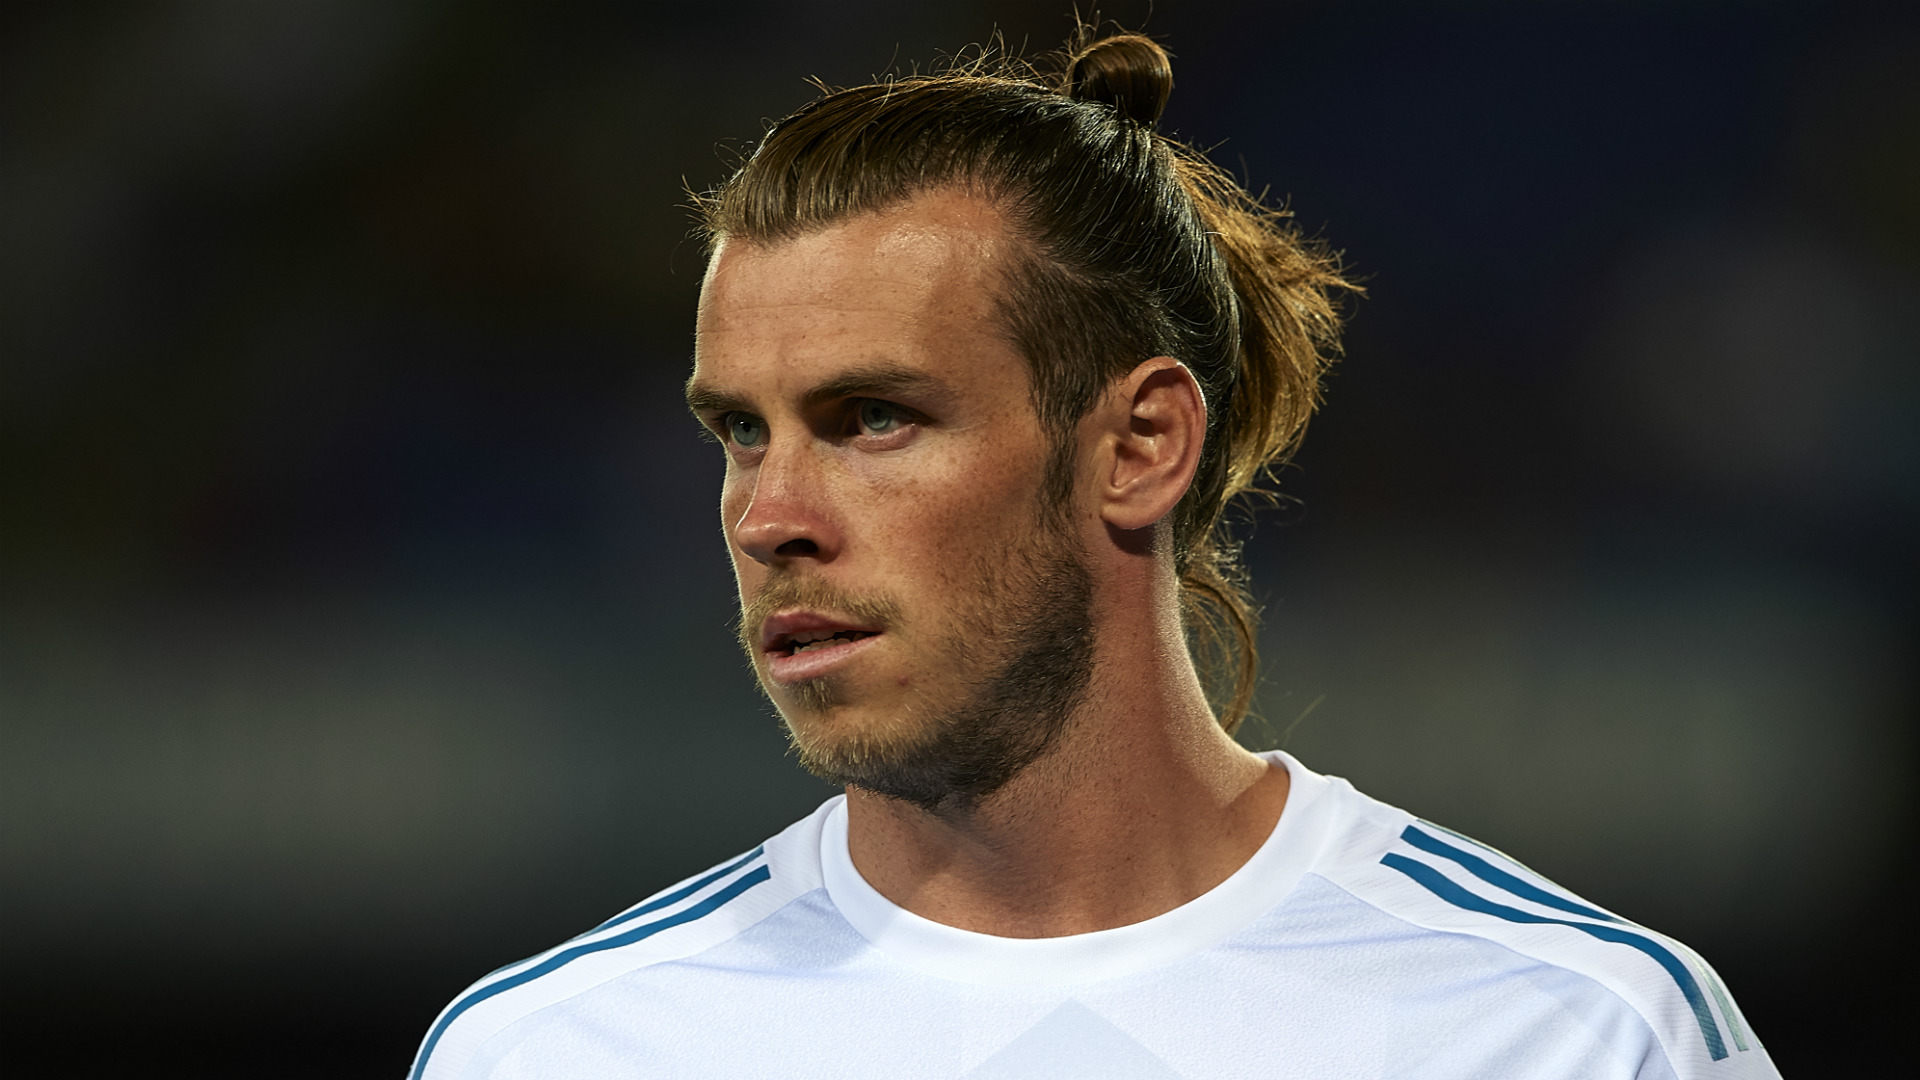 Who could replace Gareth Bale and Karim Benzema?